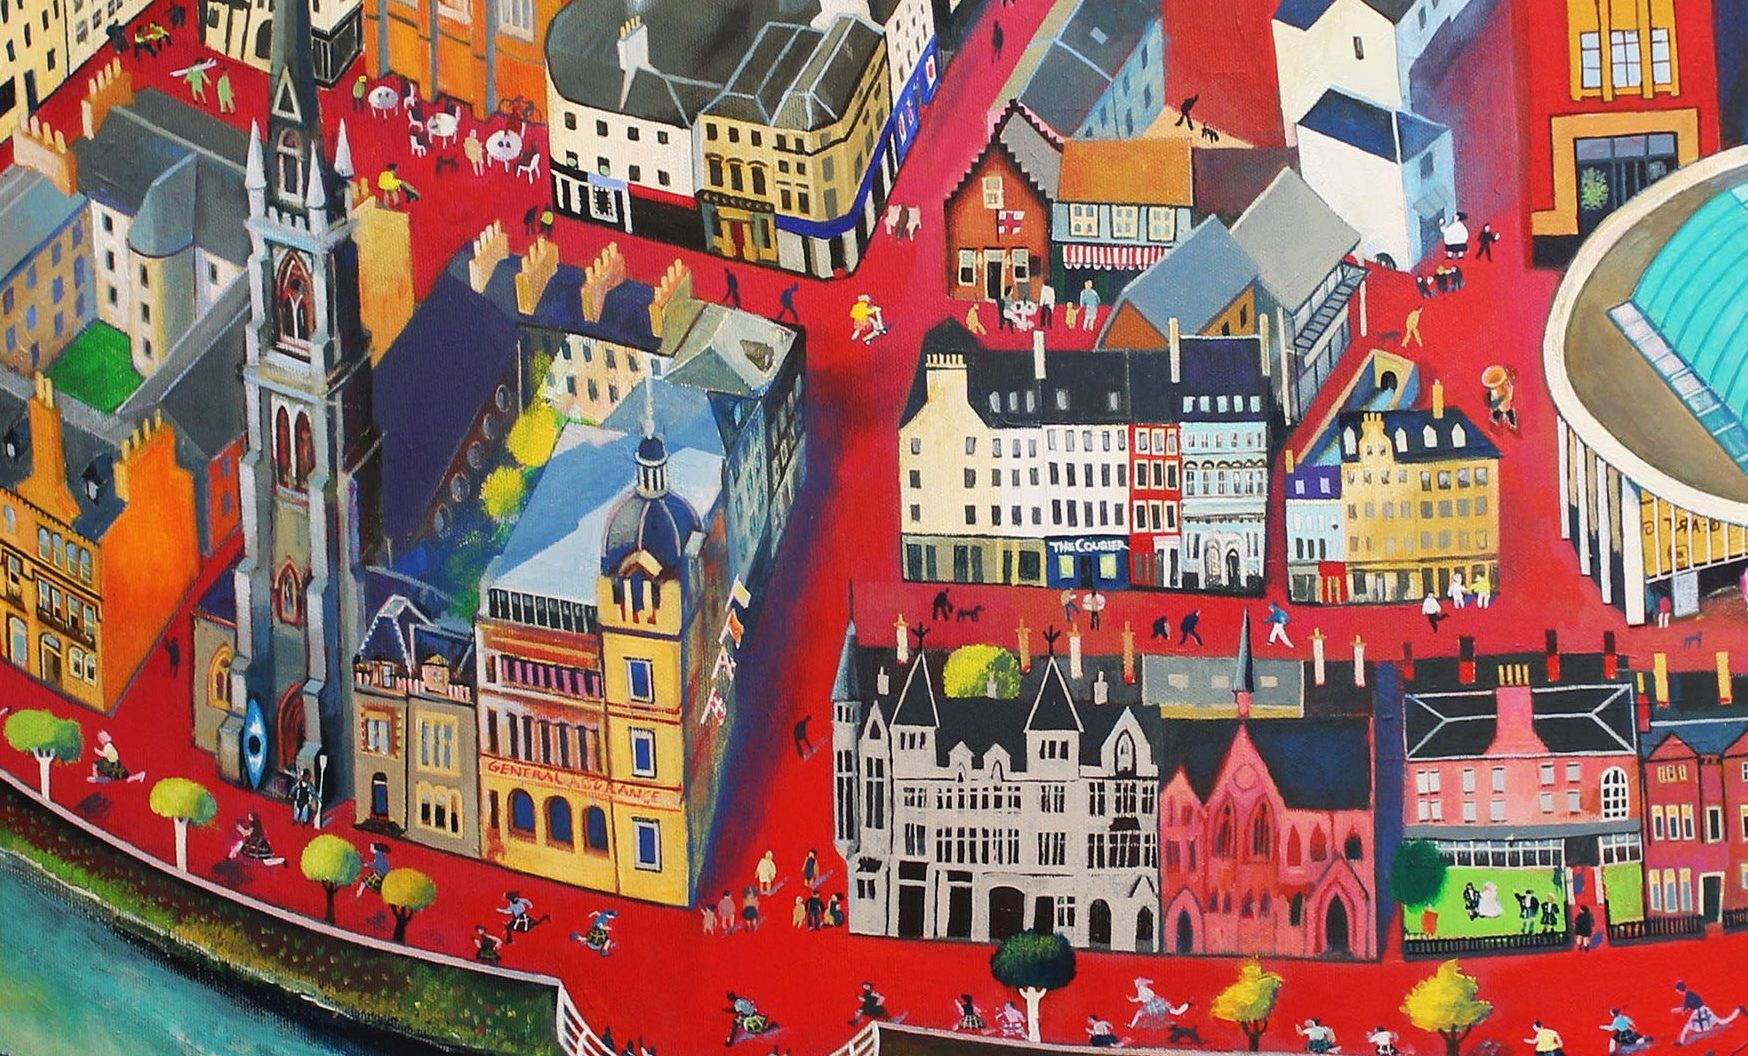 Part of the painting by Rob Hain showing the Courier office and Rev Scott Burton